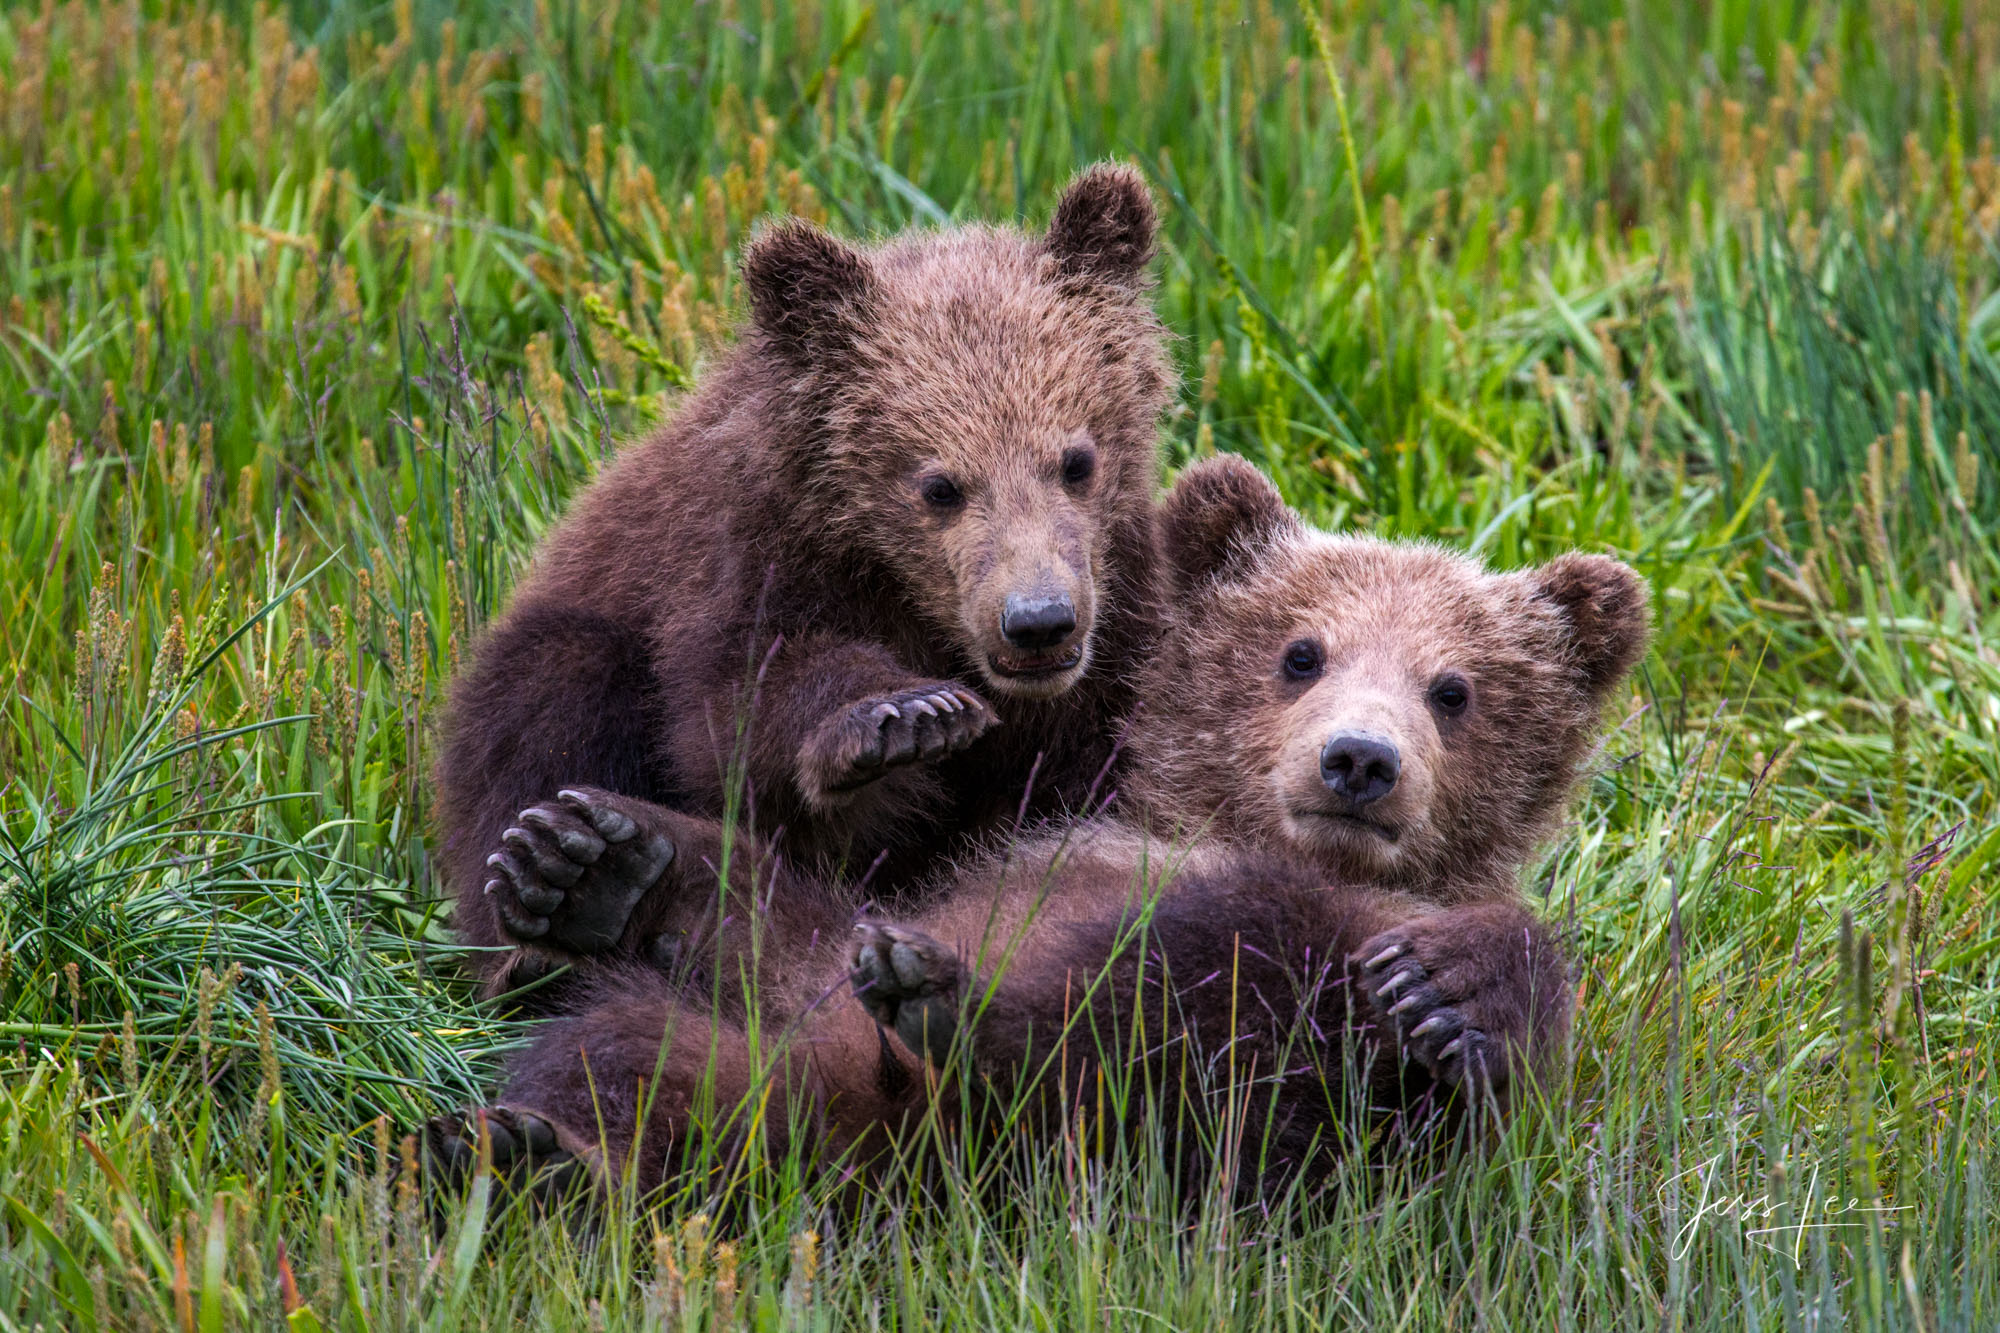 Alaska Grizzly Cubs at play Limited edition of 800 prints. These Grizzly bear fine art wildlife photographs are offered as high...